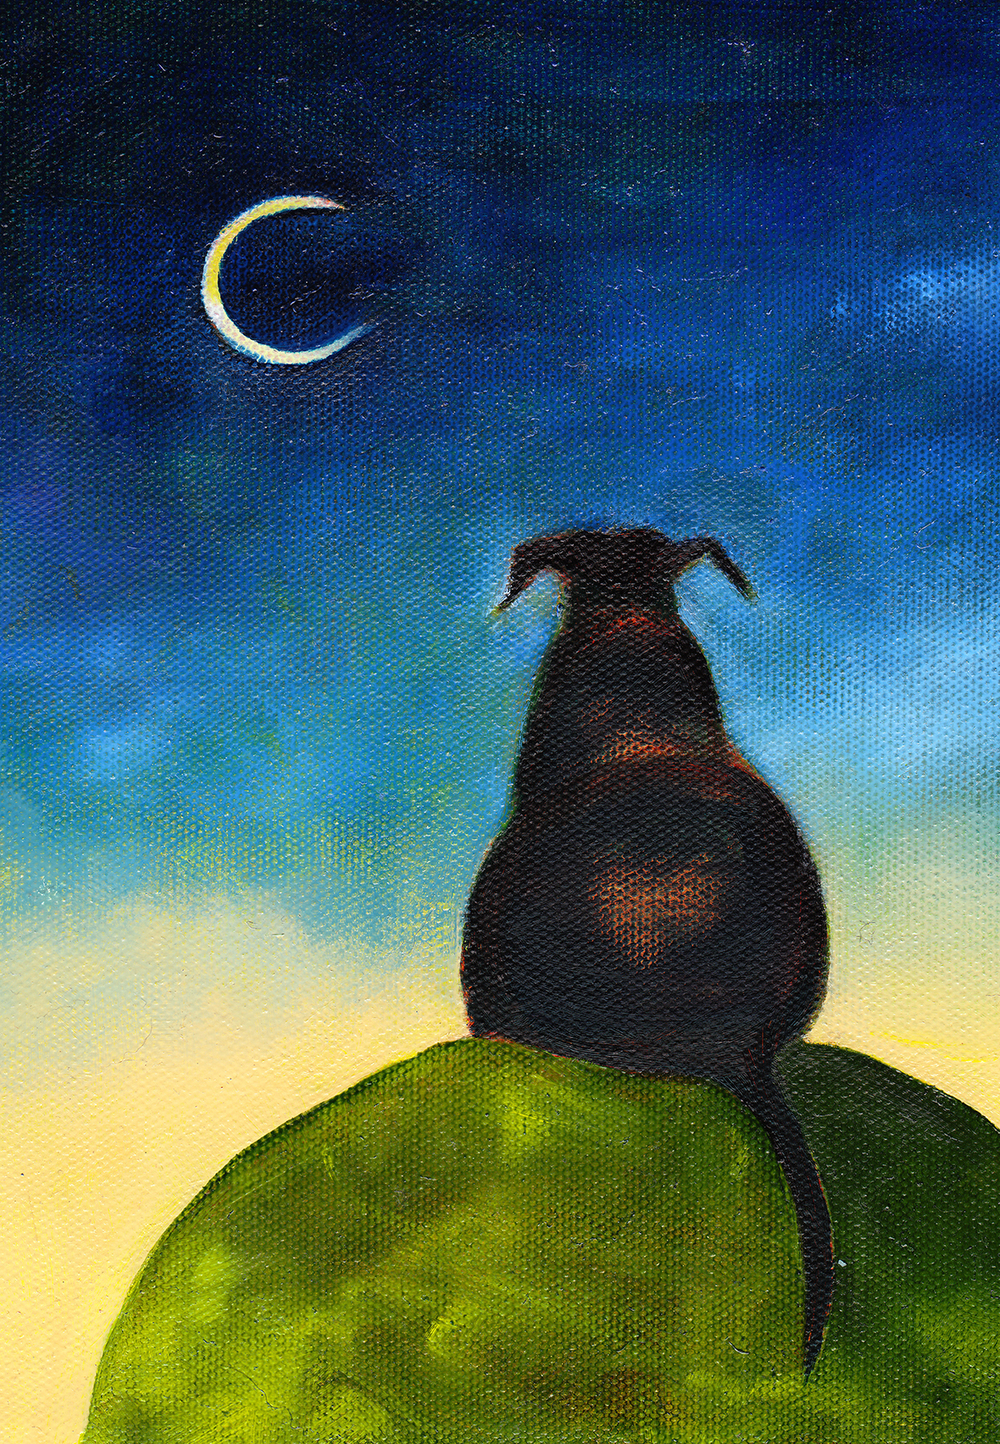 Moon Gazing       Oil on Canvas